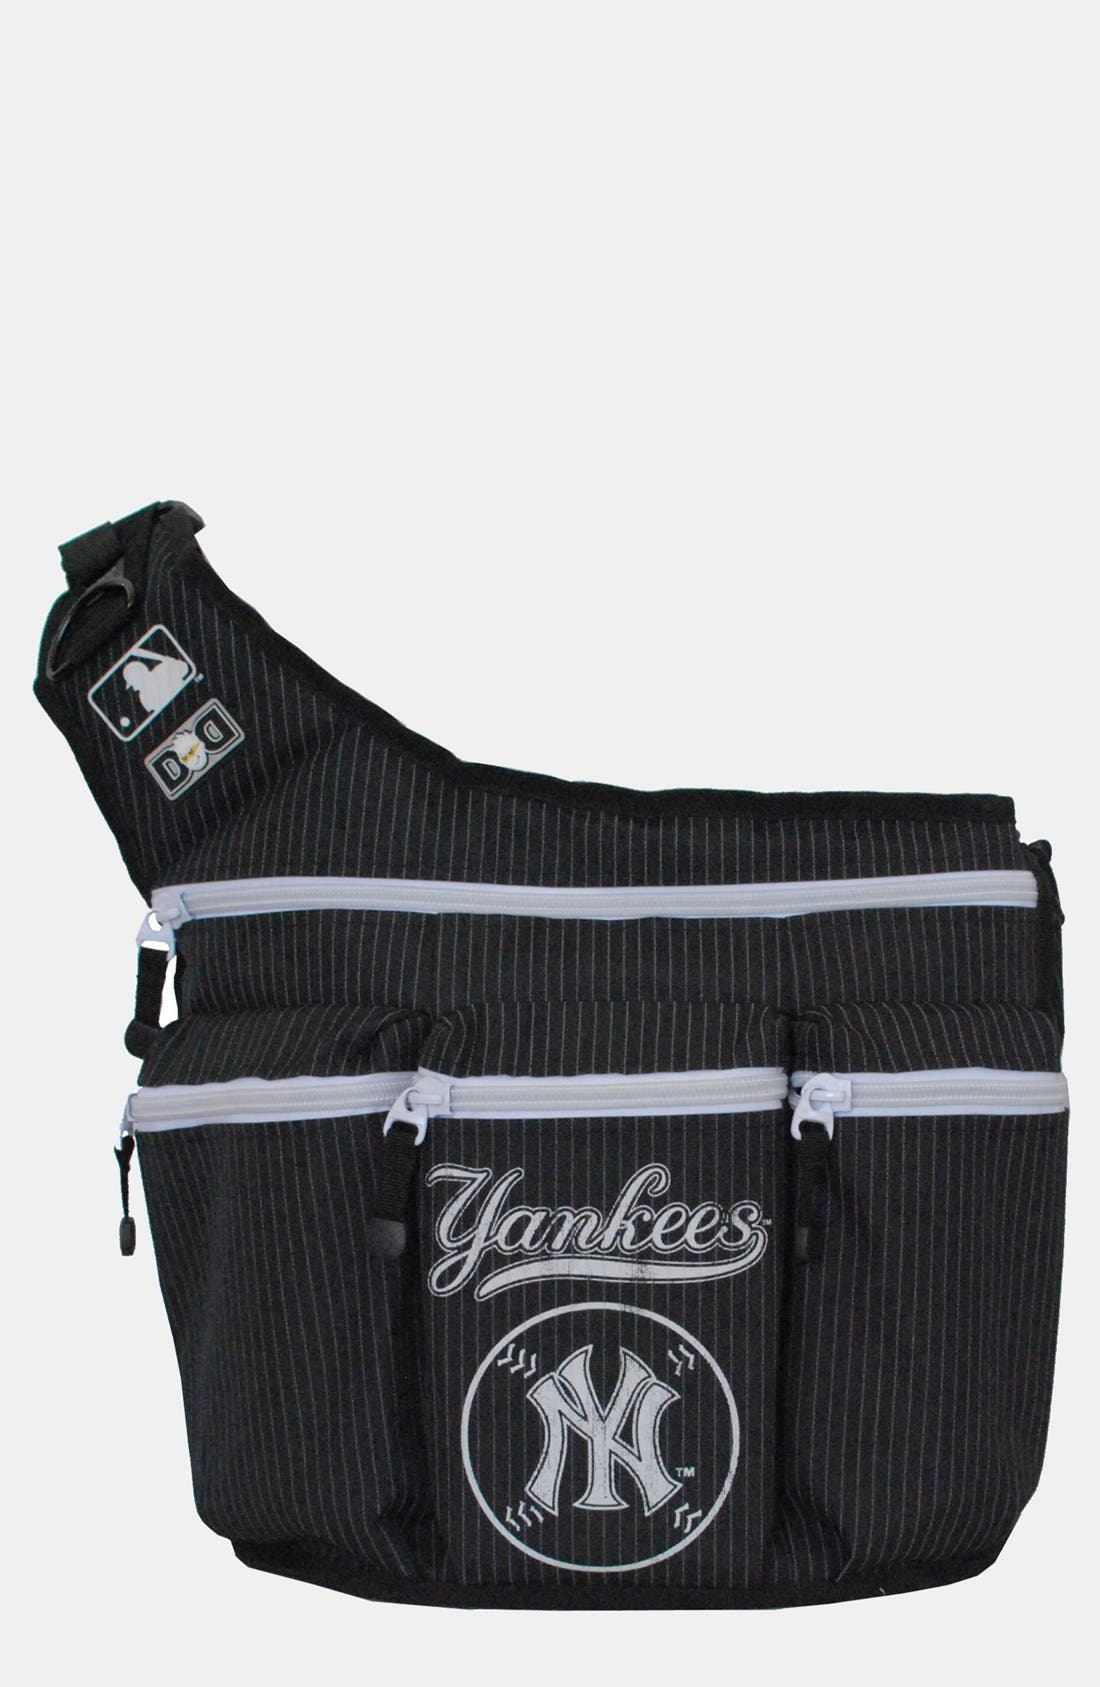 Diaper Dude 'New York Yankees' Messenger Diaper Bag